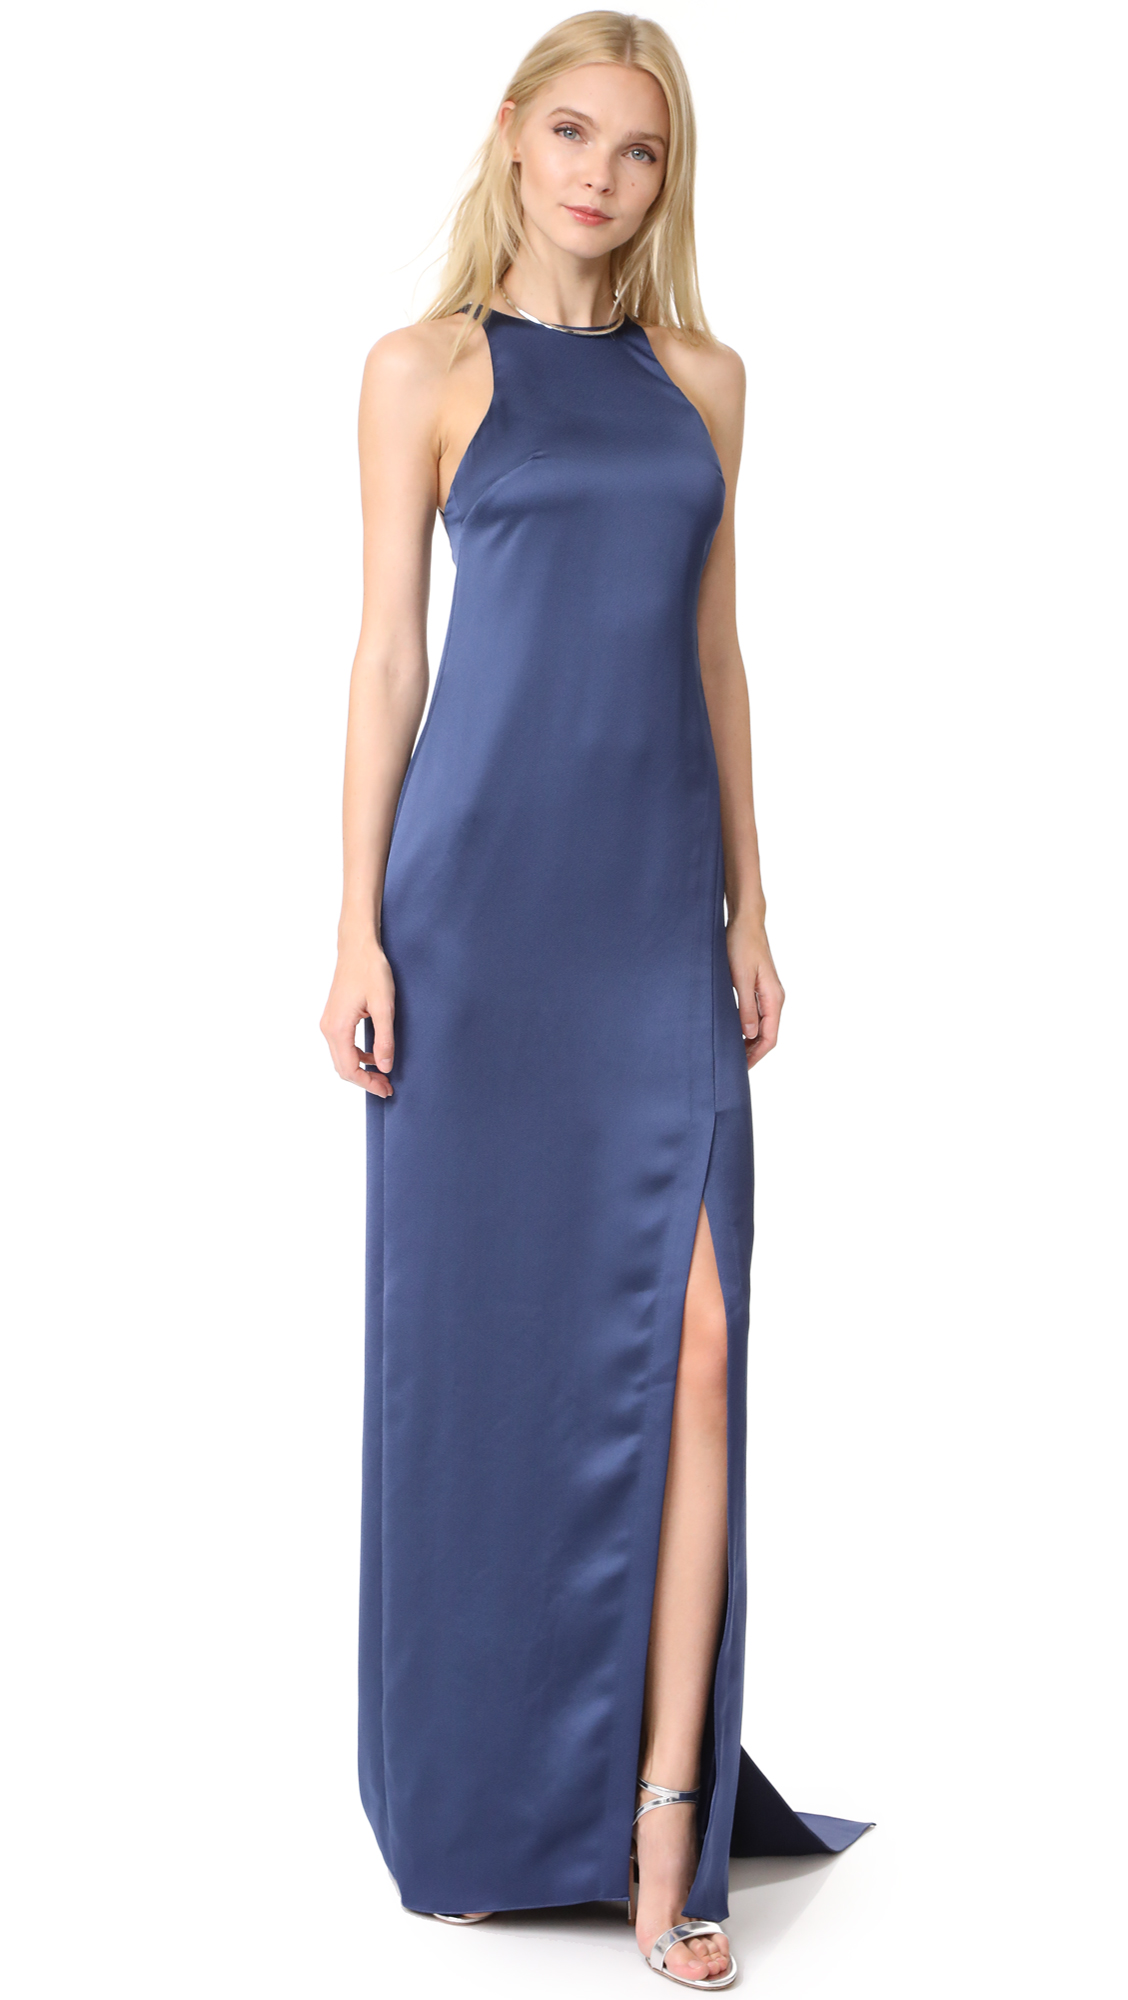 Halston Heritage High Neck Satin Gown with Back Drape - Navy